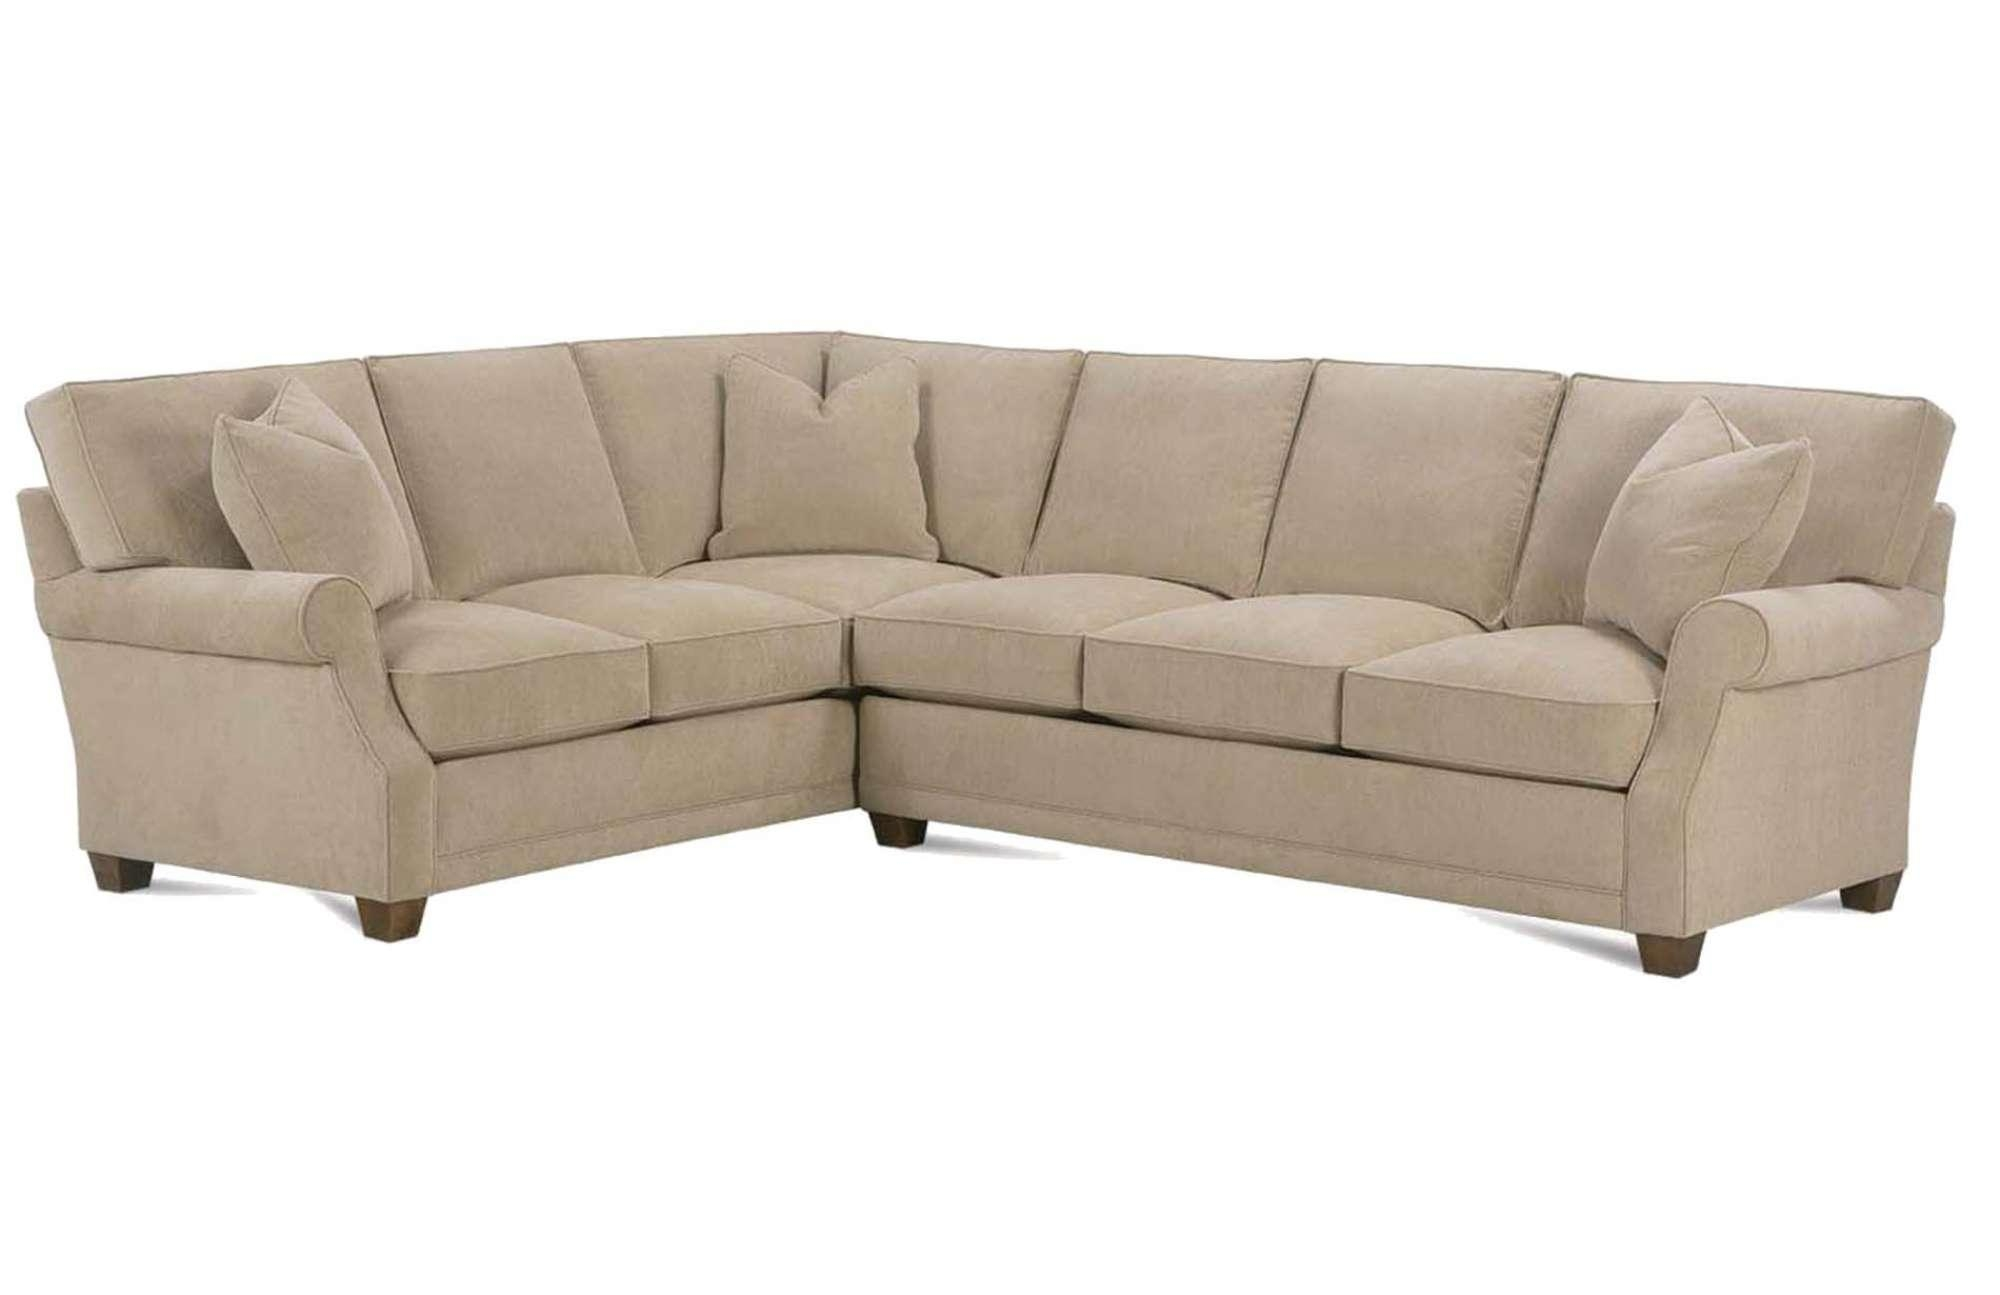 Sectionals | Concepts Furniture With Regard To Denver Sectional (View 3 of 15)